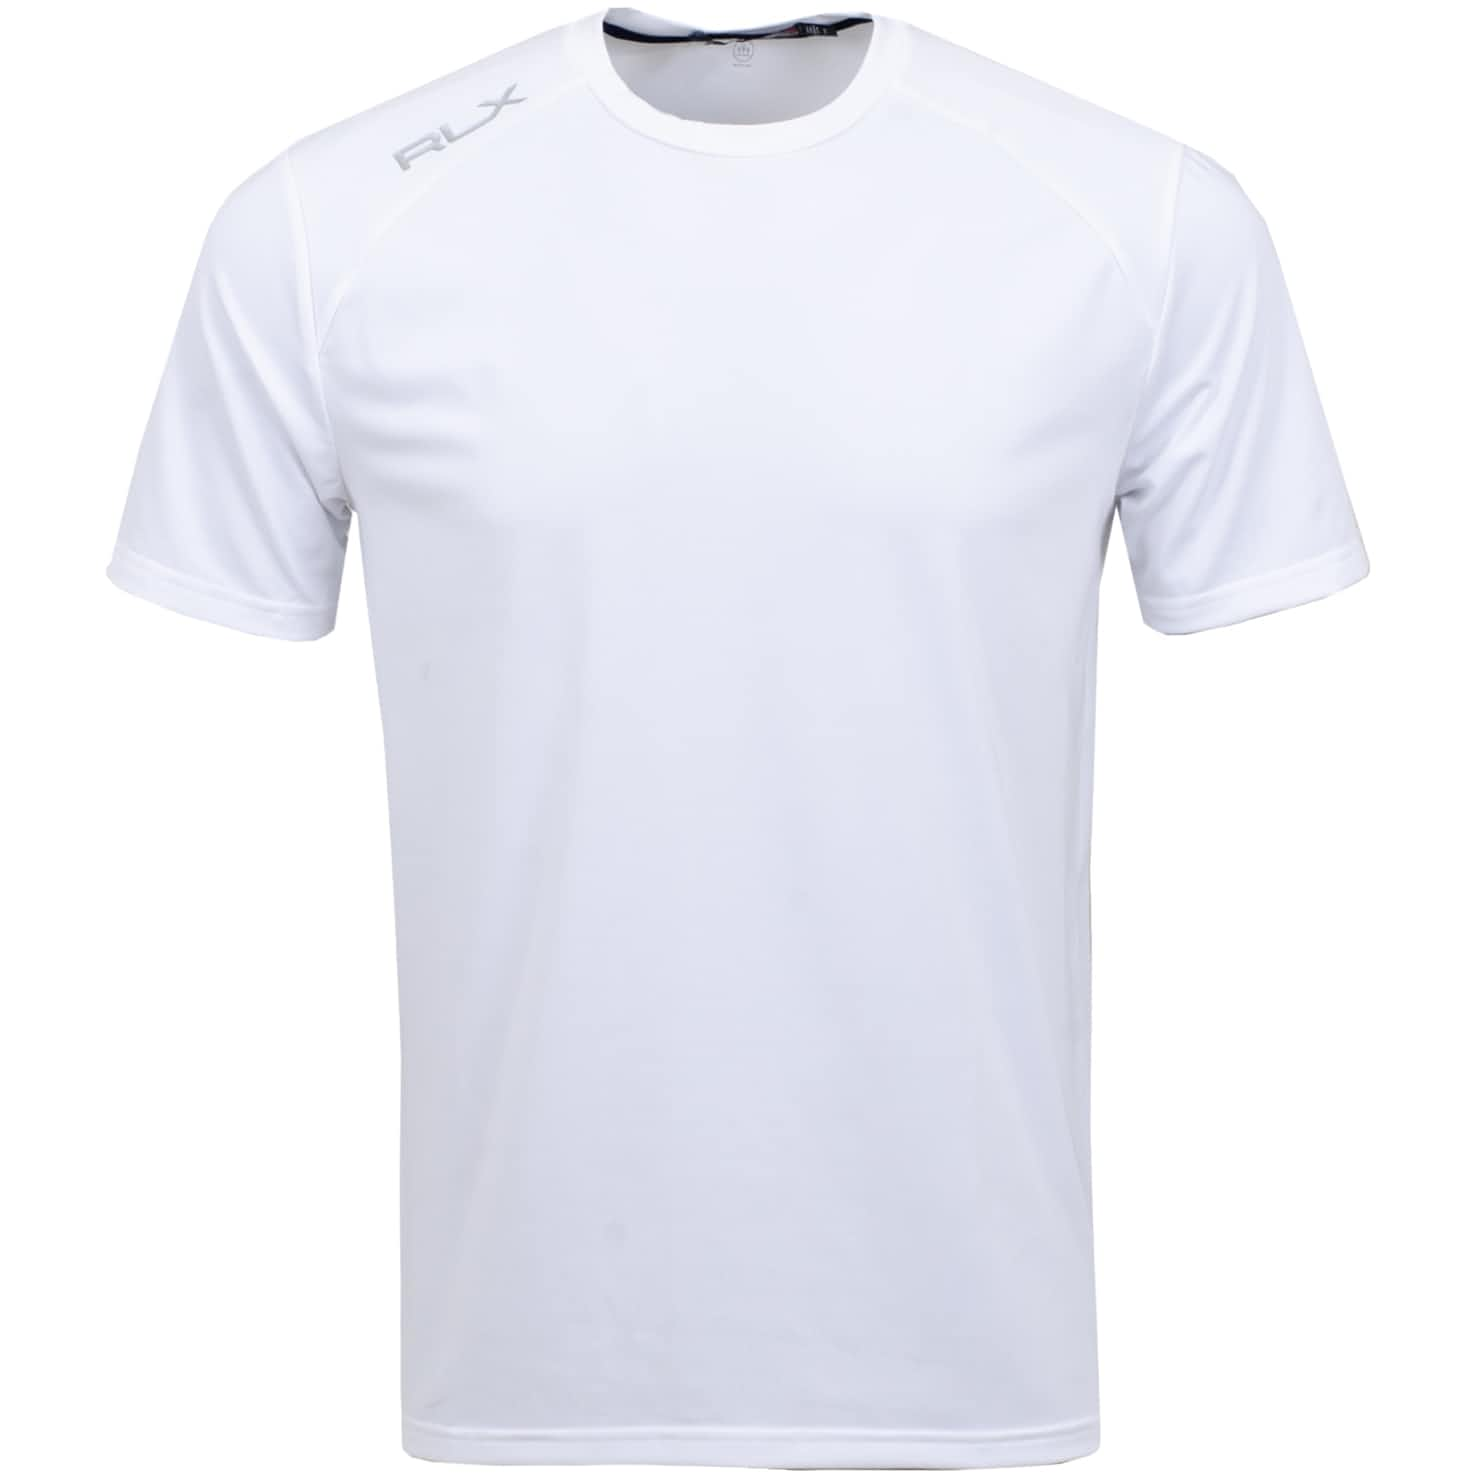 Active Crew T-Shirt Pure White - SS20